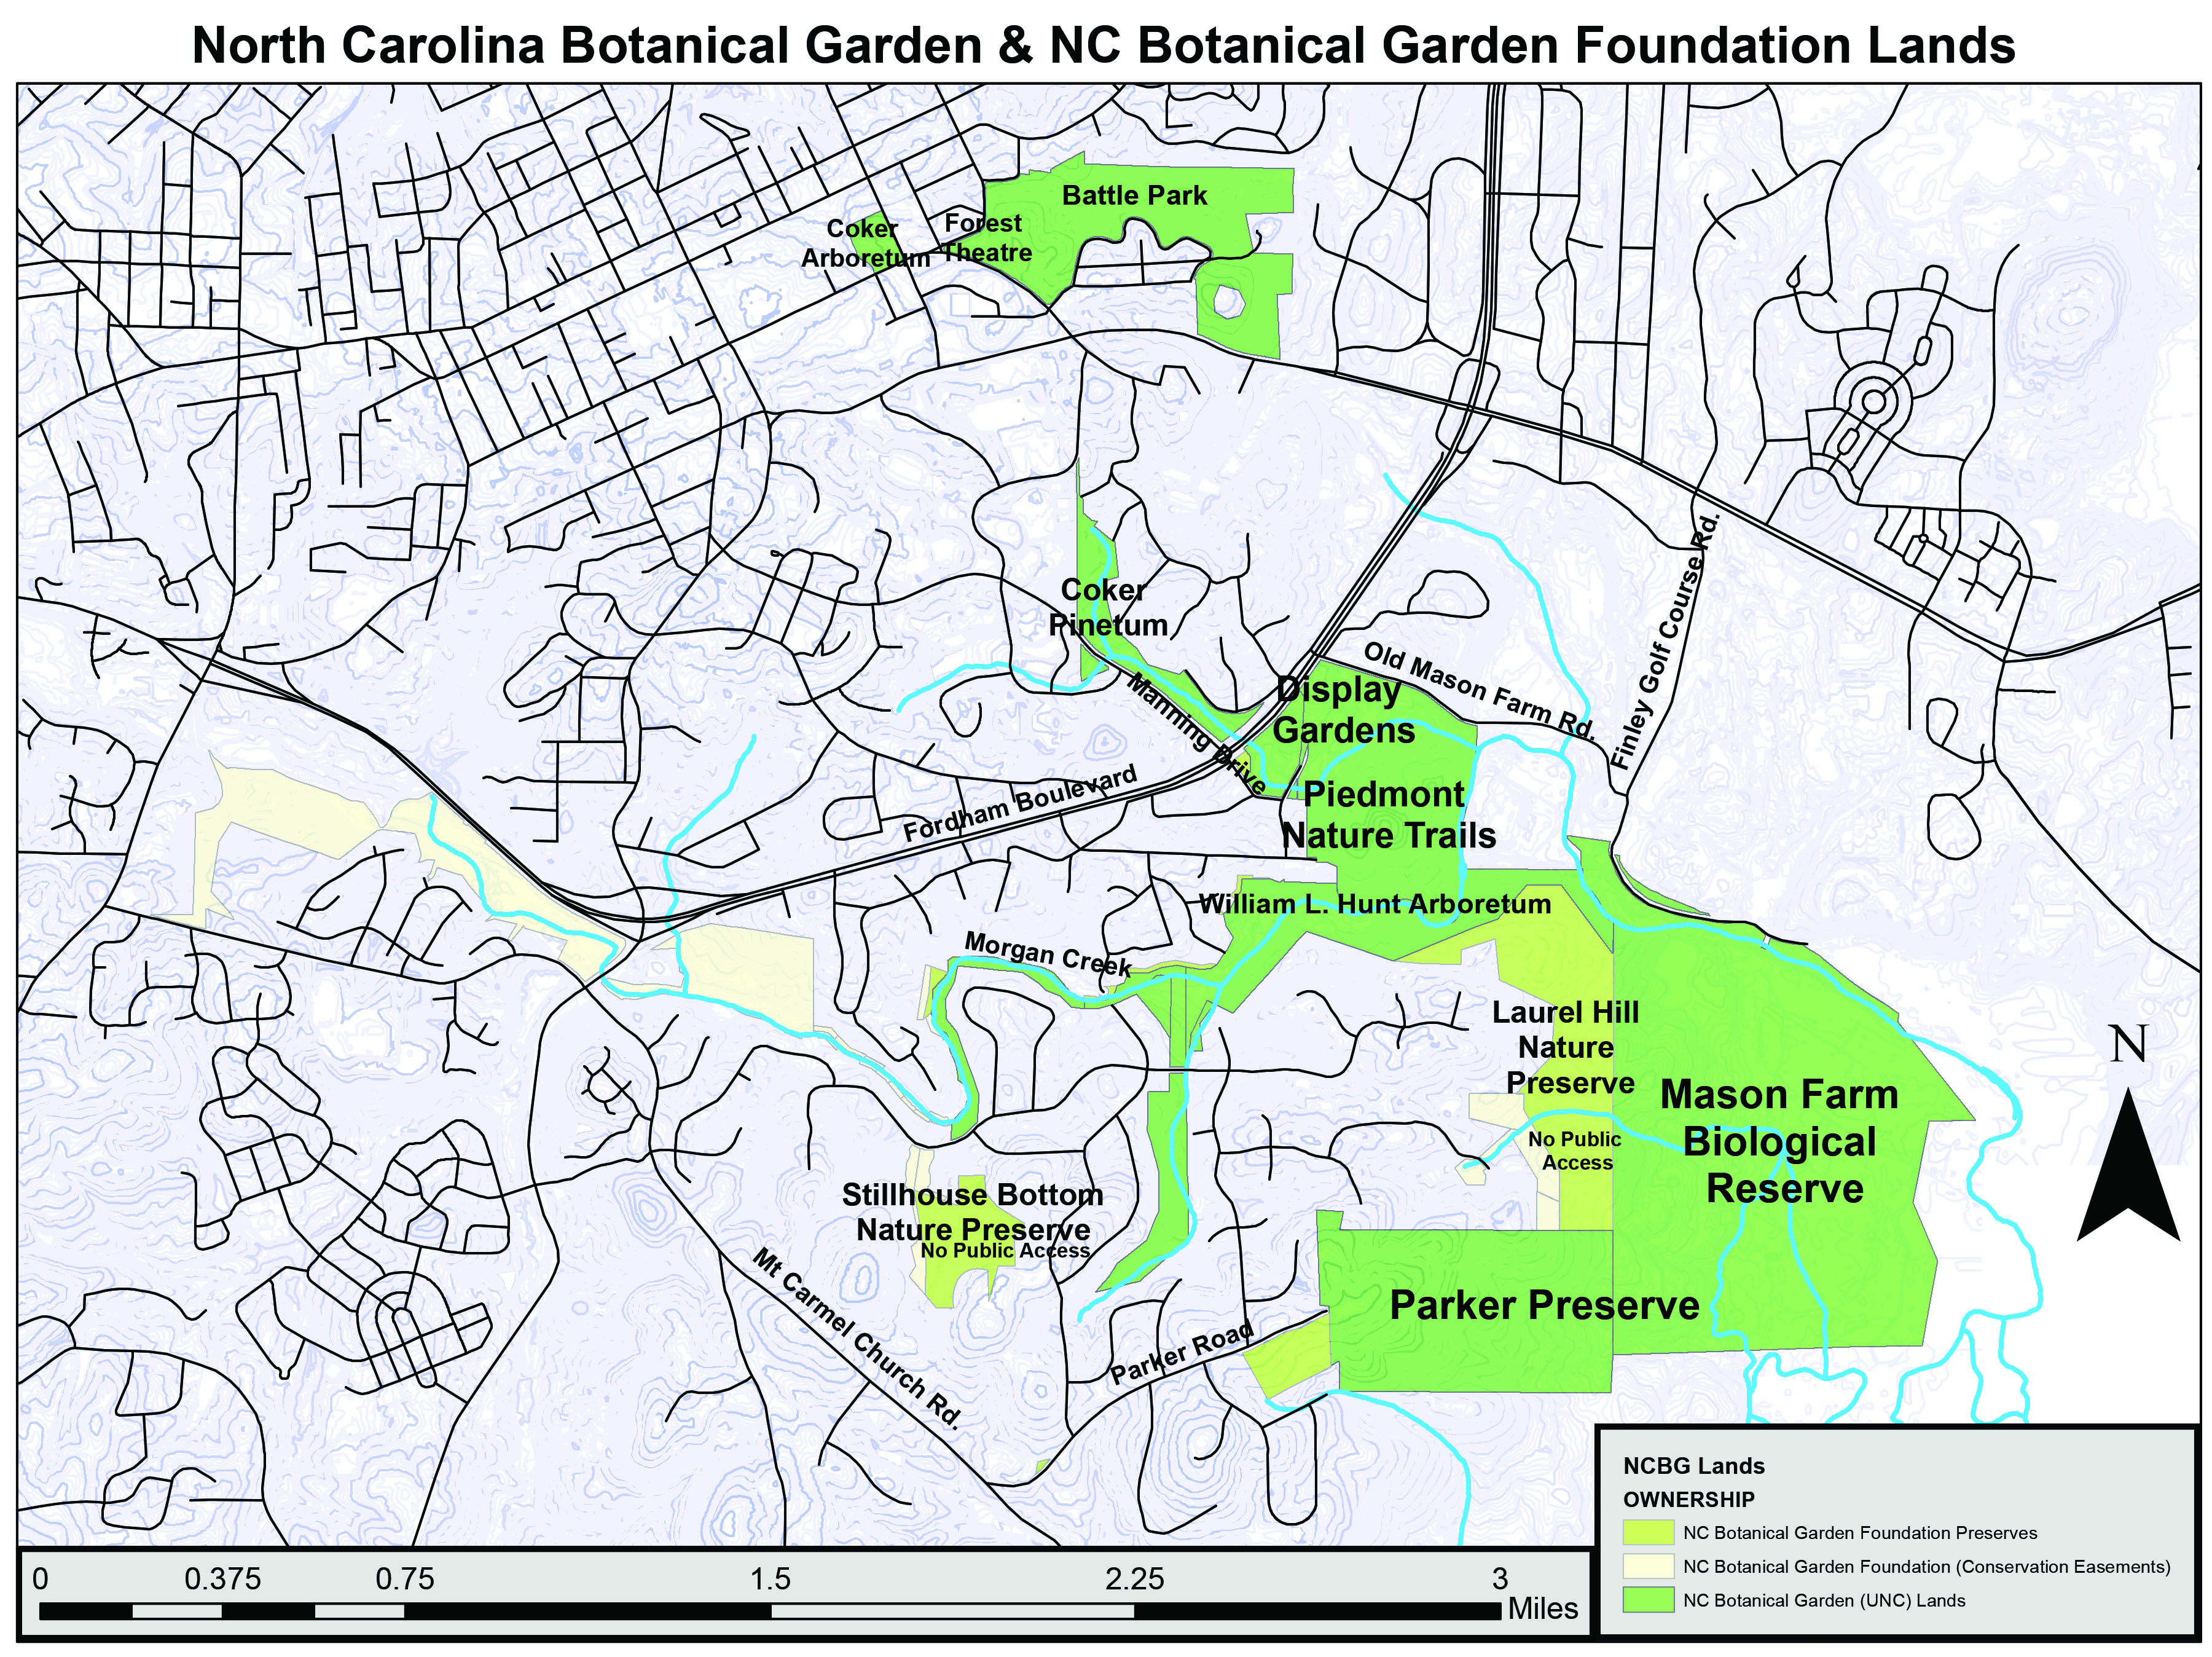 Map of lands in southern Chapel Hill conserved by NCBG and the NCBG Foundation, including our display gardens, Piedmont Nature Trails, Battle Park, Mason Farm Biological Reserve, Parker Preserve, and more.